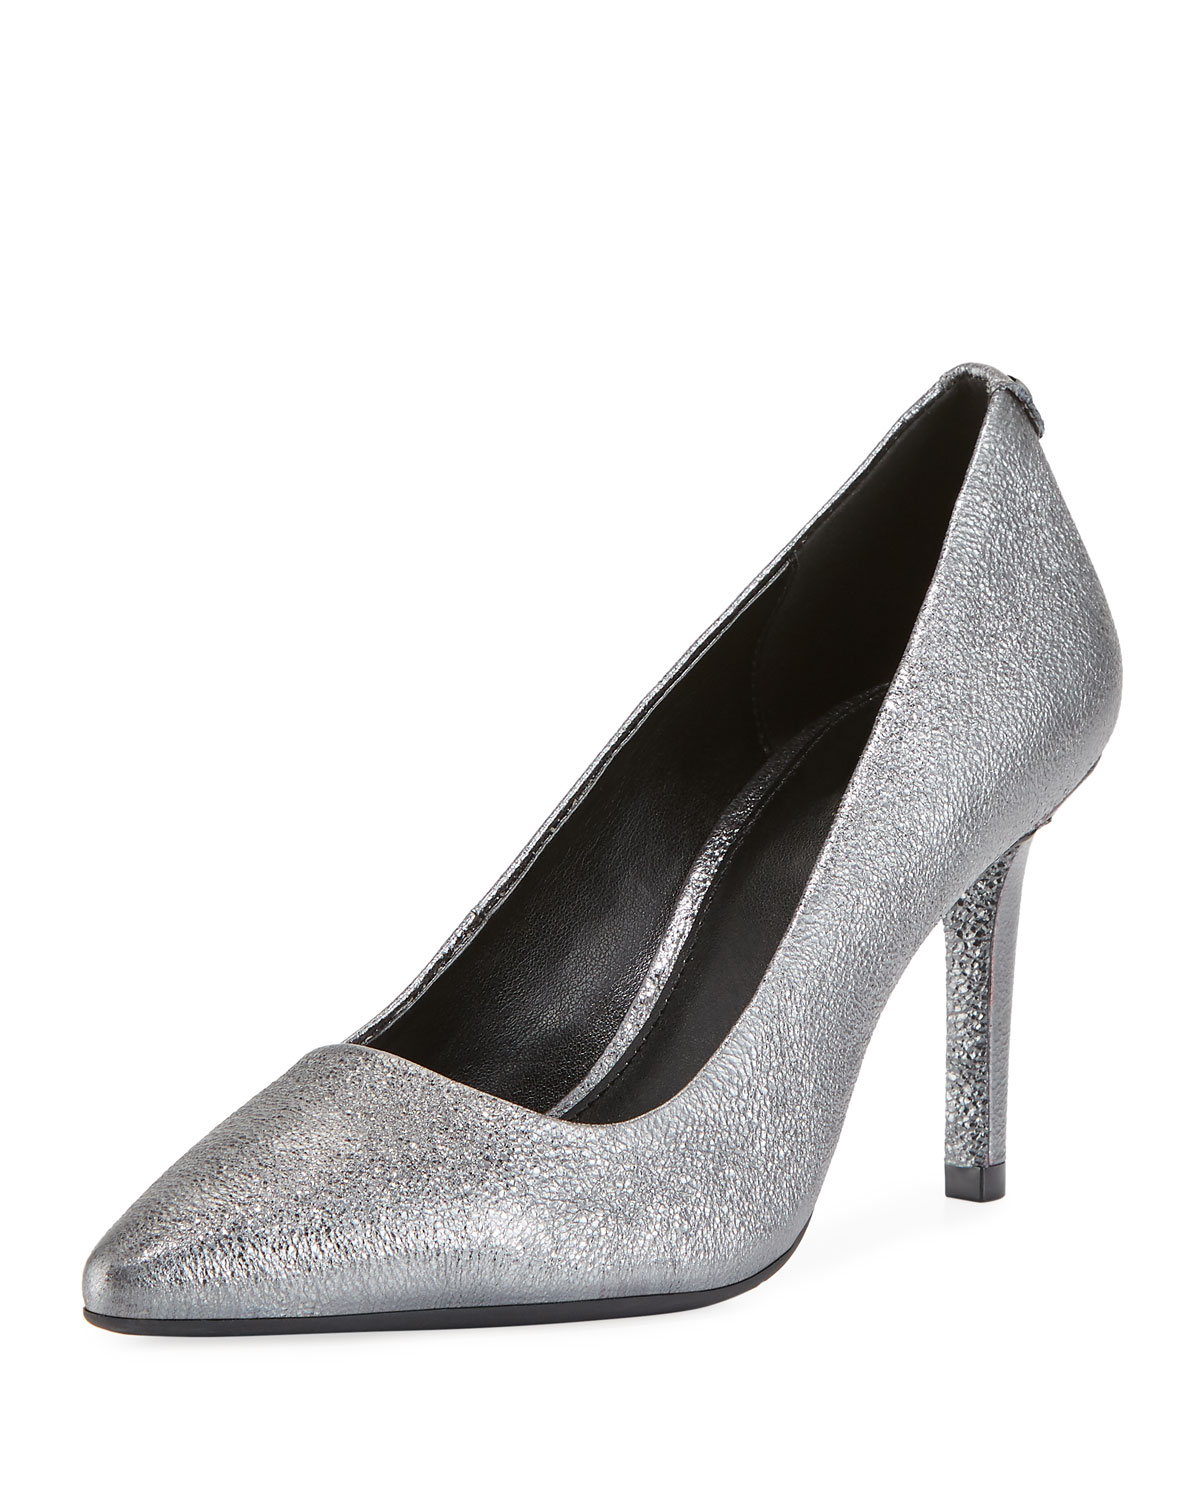 335b022b8a MICHAEL Michael Kors Dorothy Flex Metallic Leather Pumps | Neiman Marcus